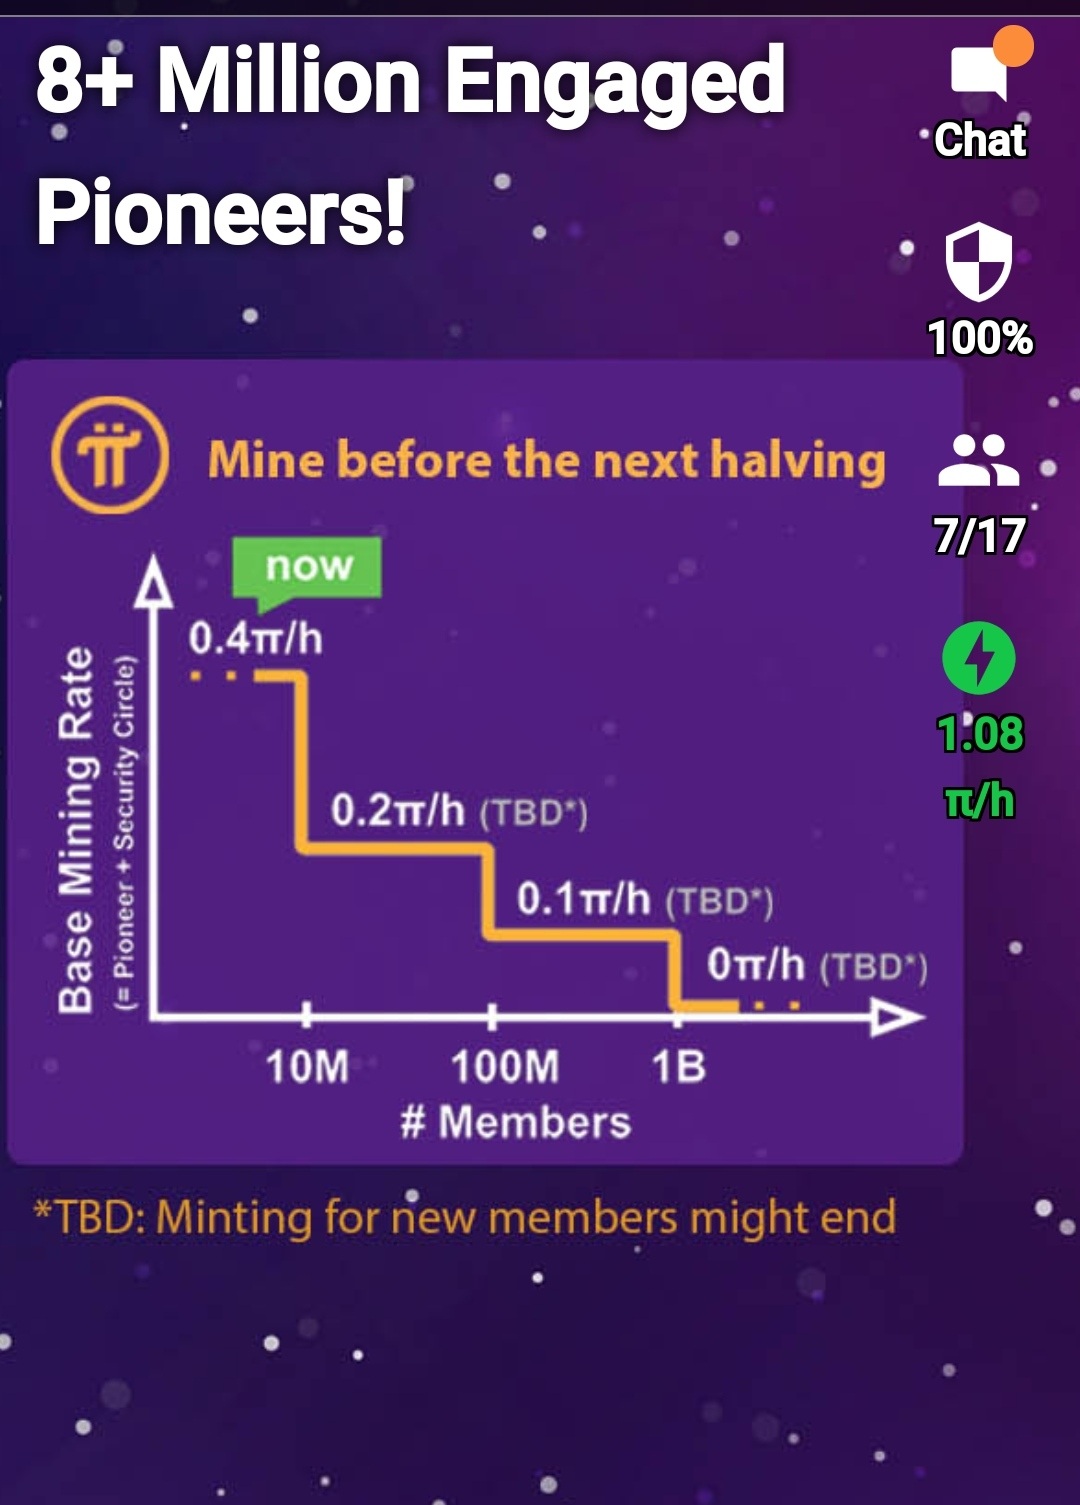 Get 1 free Pi Network Coin when you register using following link